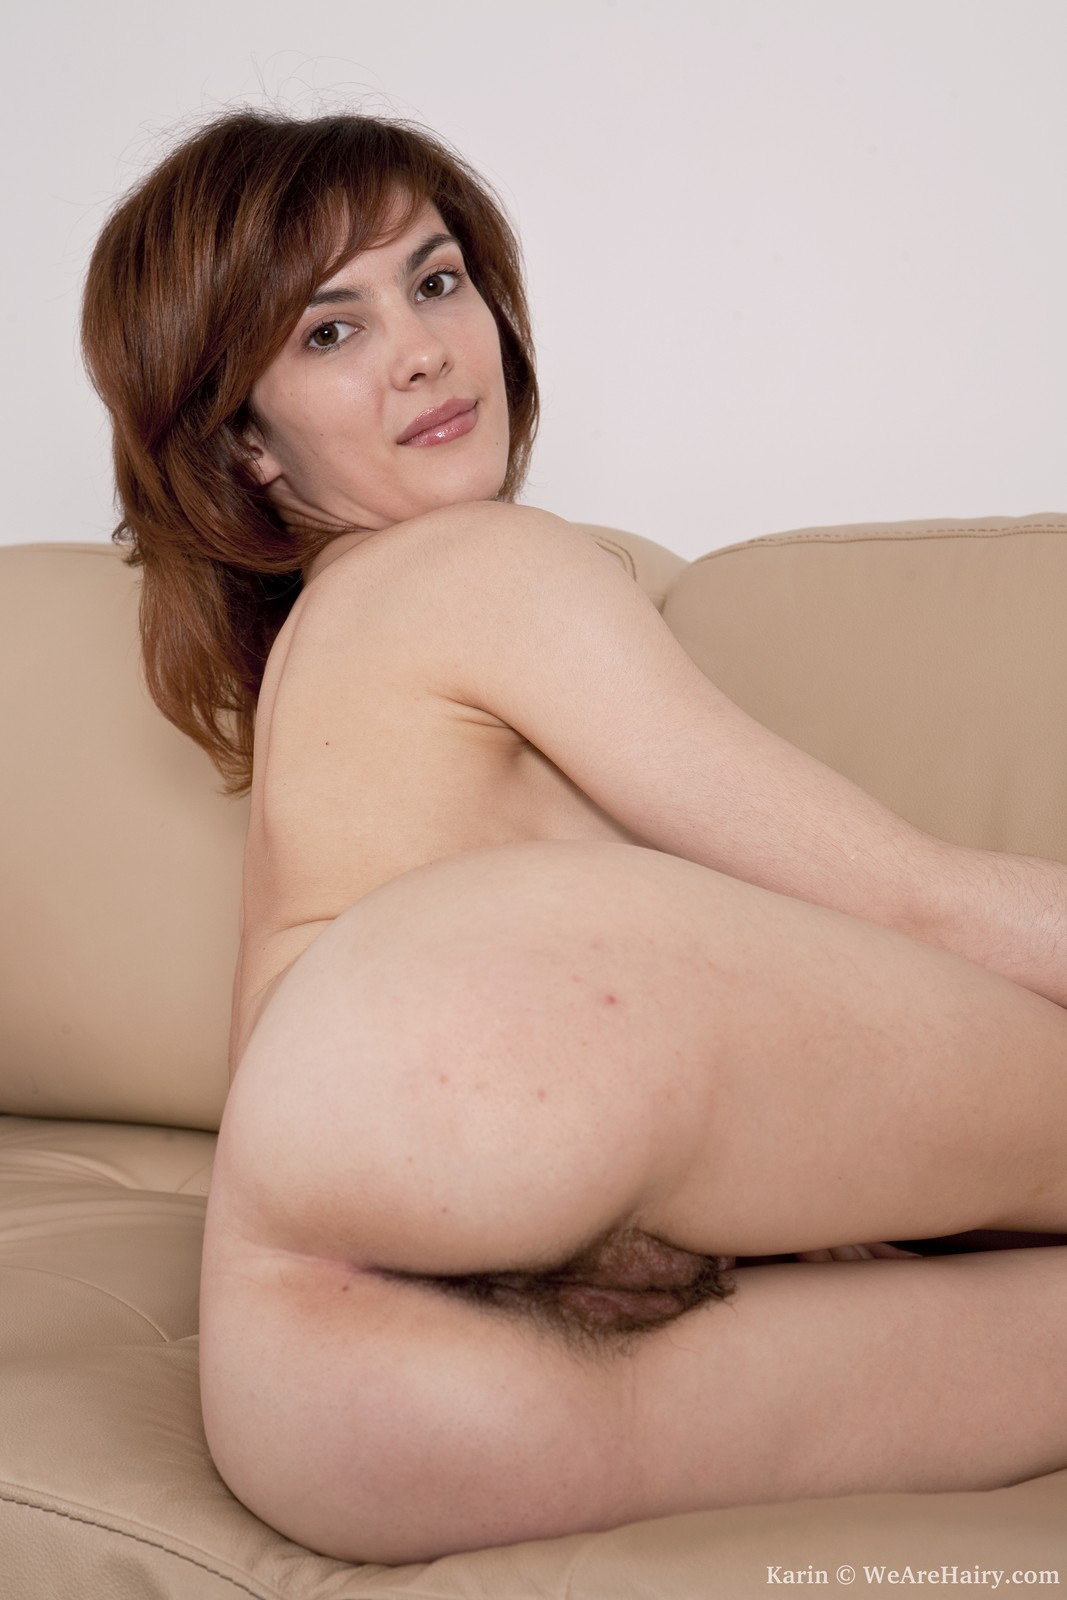 Petite Nude Mature Great gorgeous, petite karin has the perfect body and sweetest face